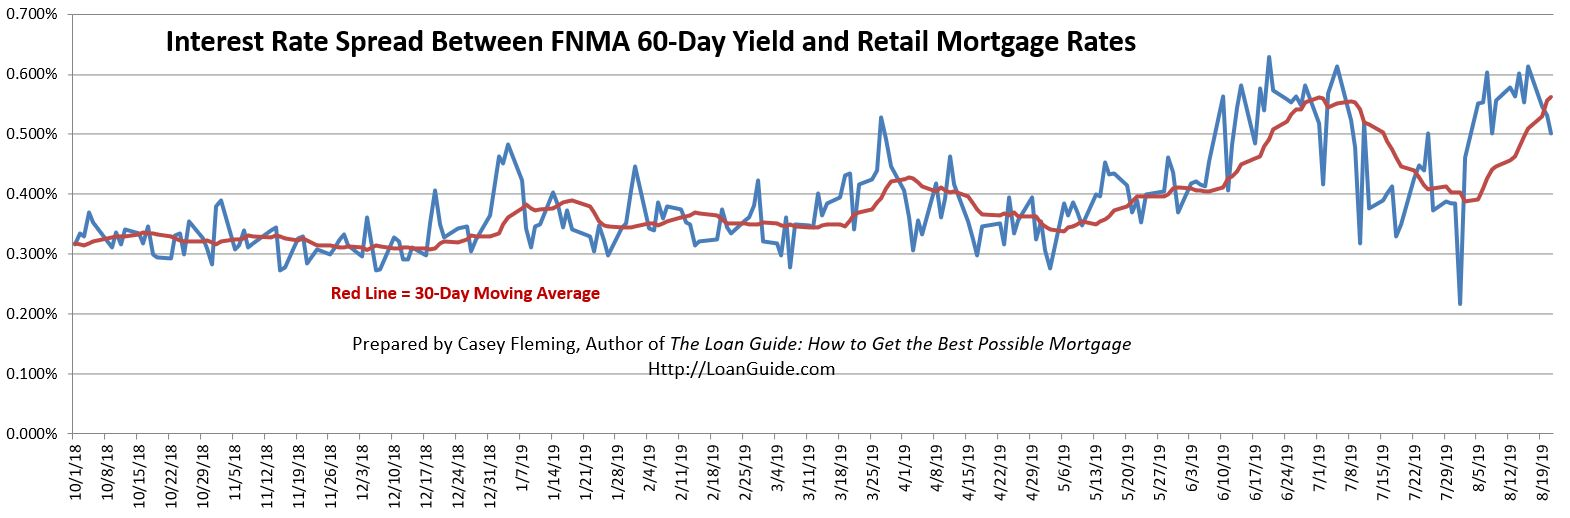 Lender margins have increased this month